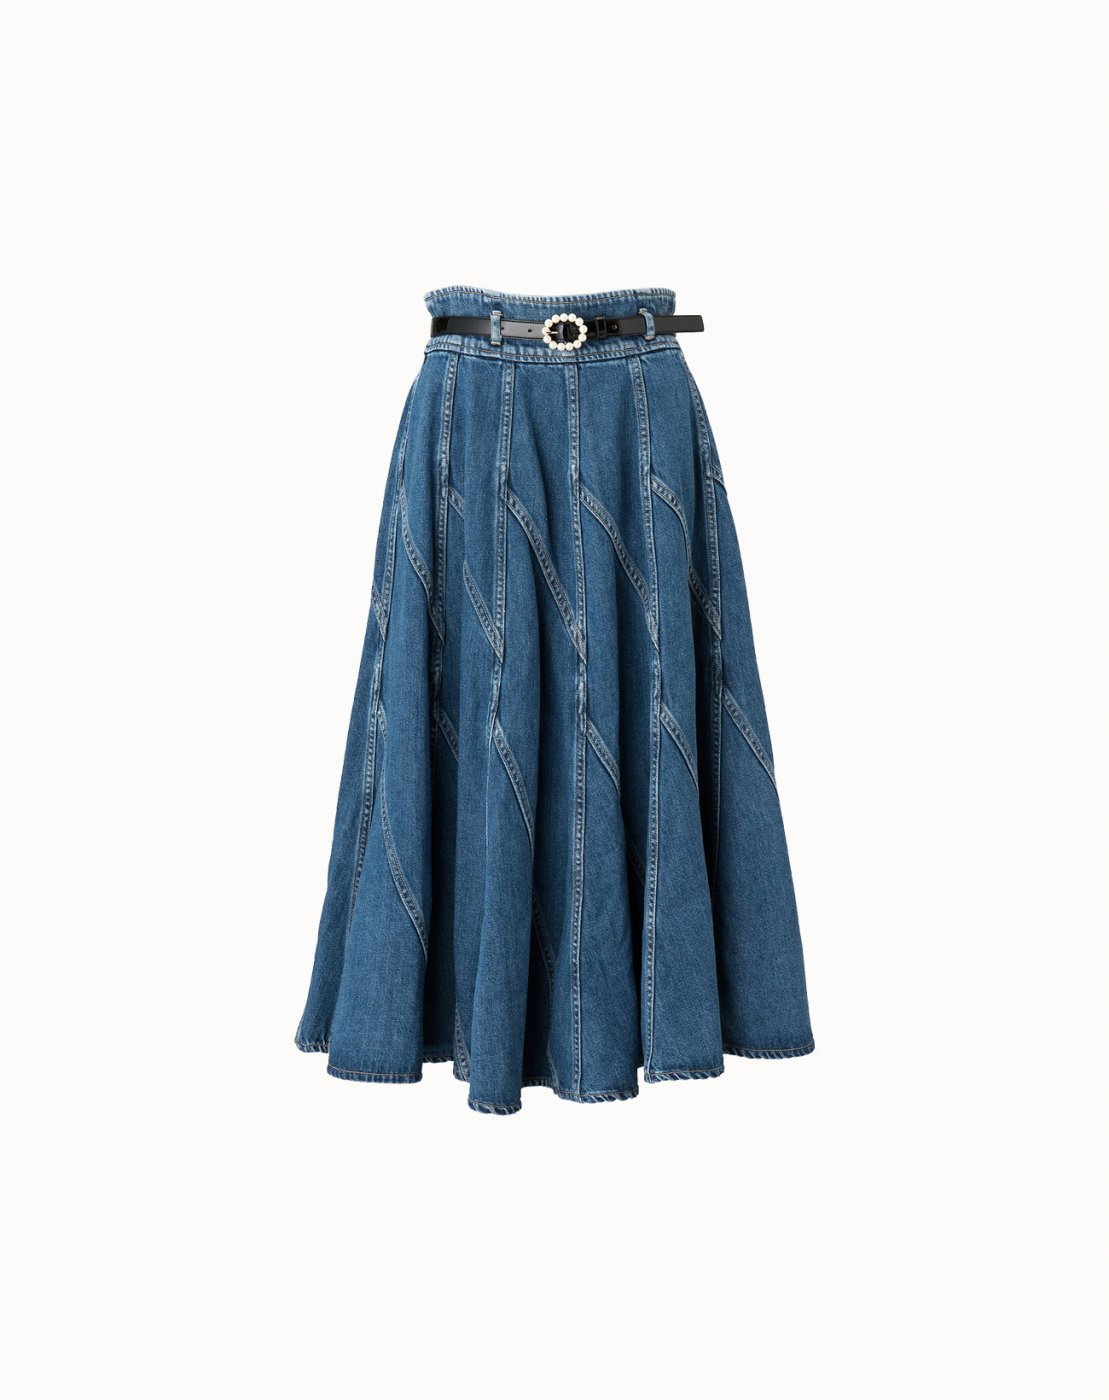 leur logette - 10 OZ Denim Skirt  - Blue